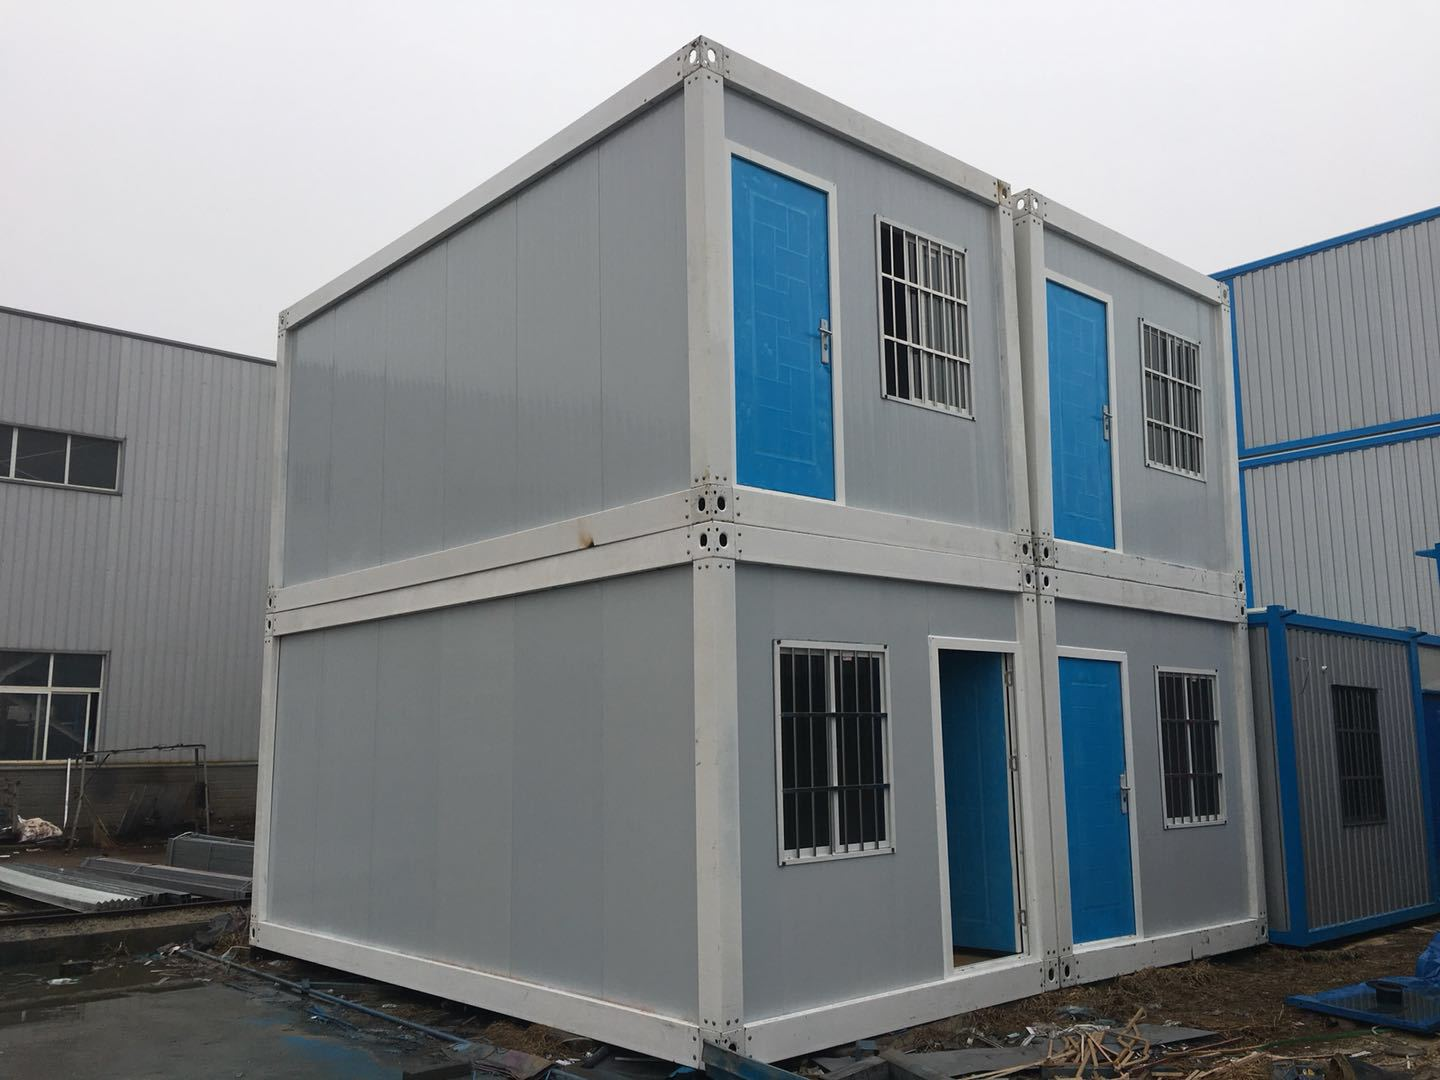 40 Ft Flat Pack Shipping Container Two Bedroom Prefab Container House Price